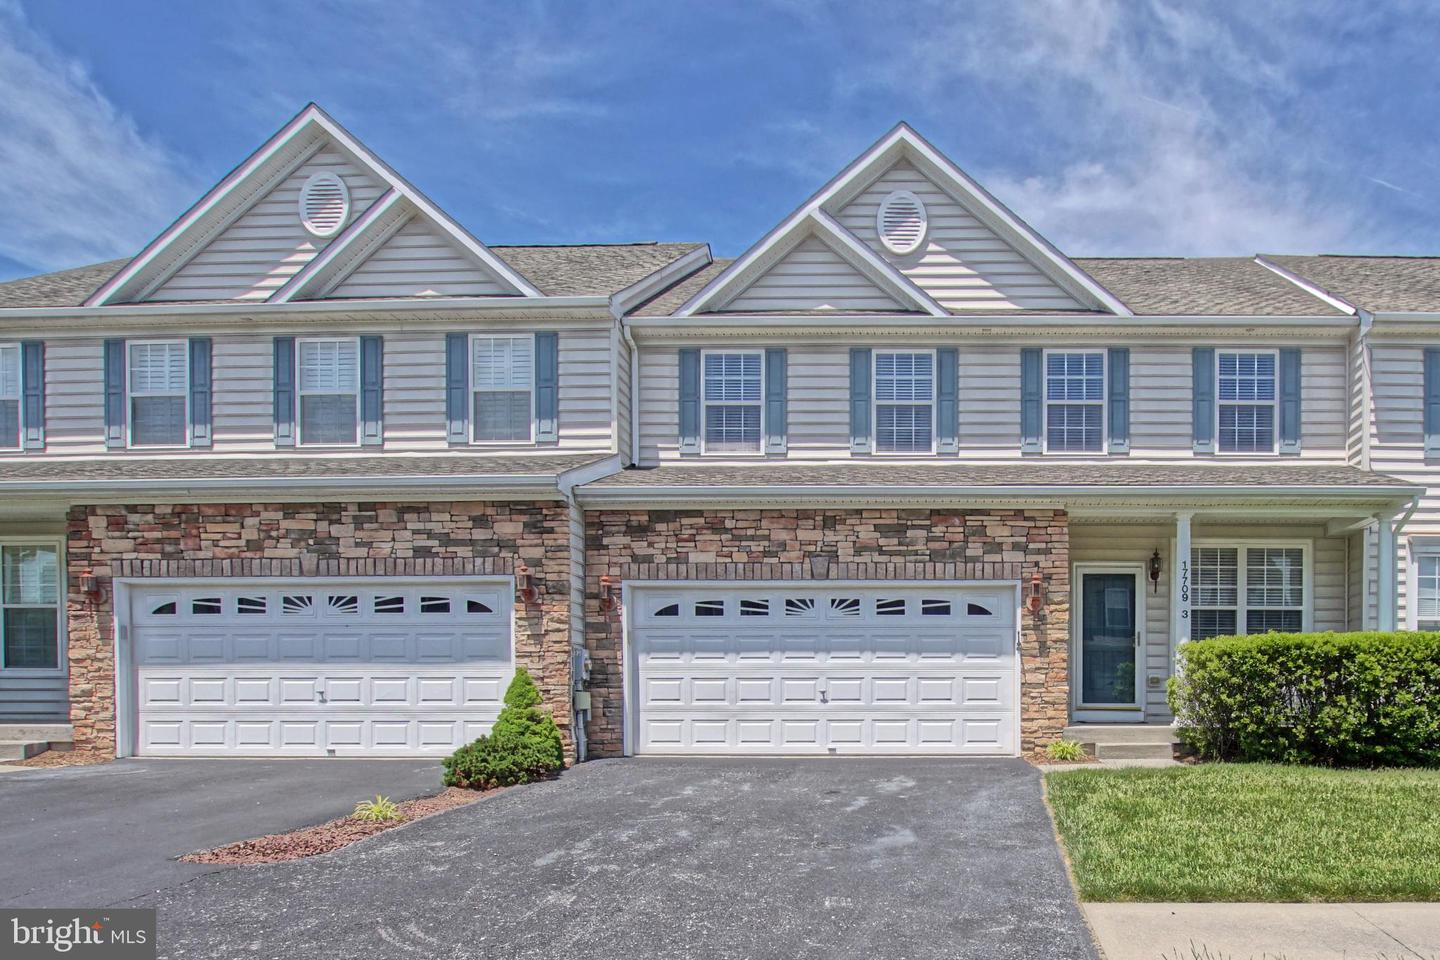 DESU140884-301735343820-2019-10-31-17-22-09 17709 Brighten Dr #3 | Lewes, DE Real Estate For Sale | MLS# Desu140884  - Lee Ann Group